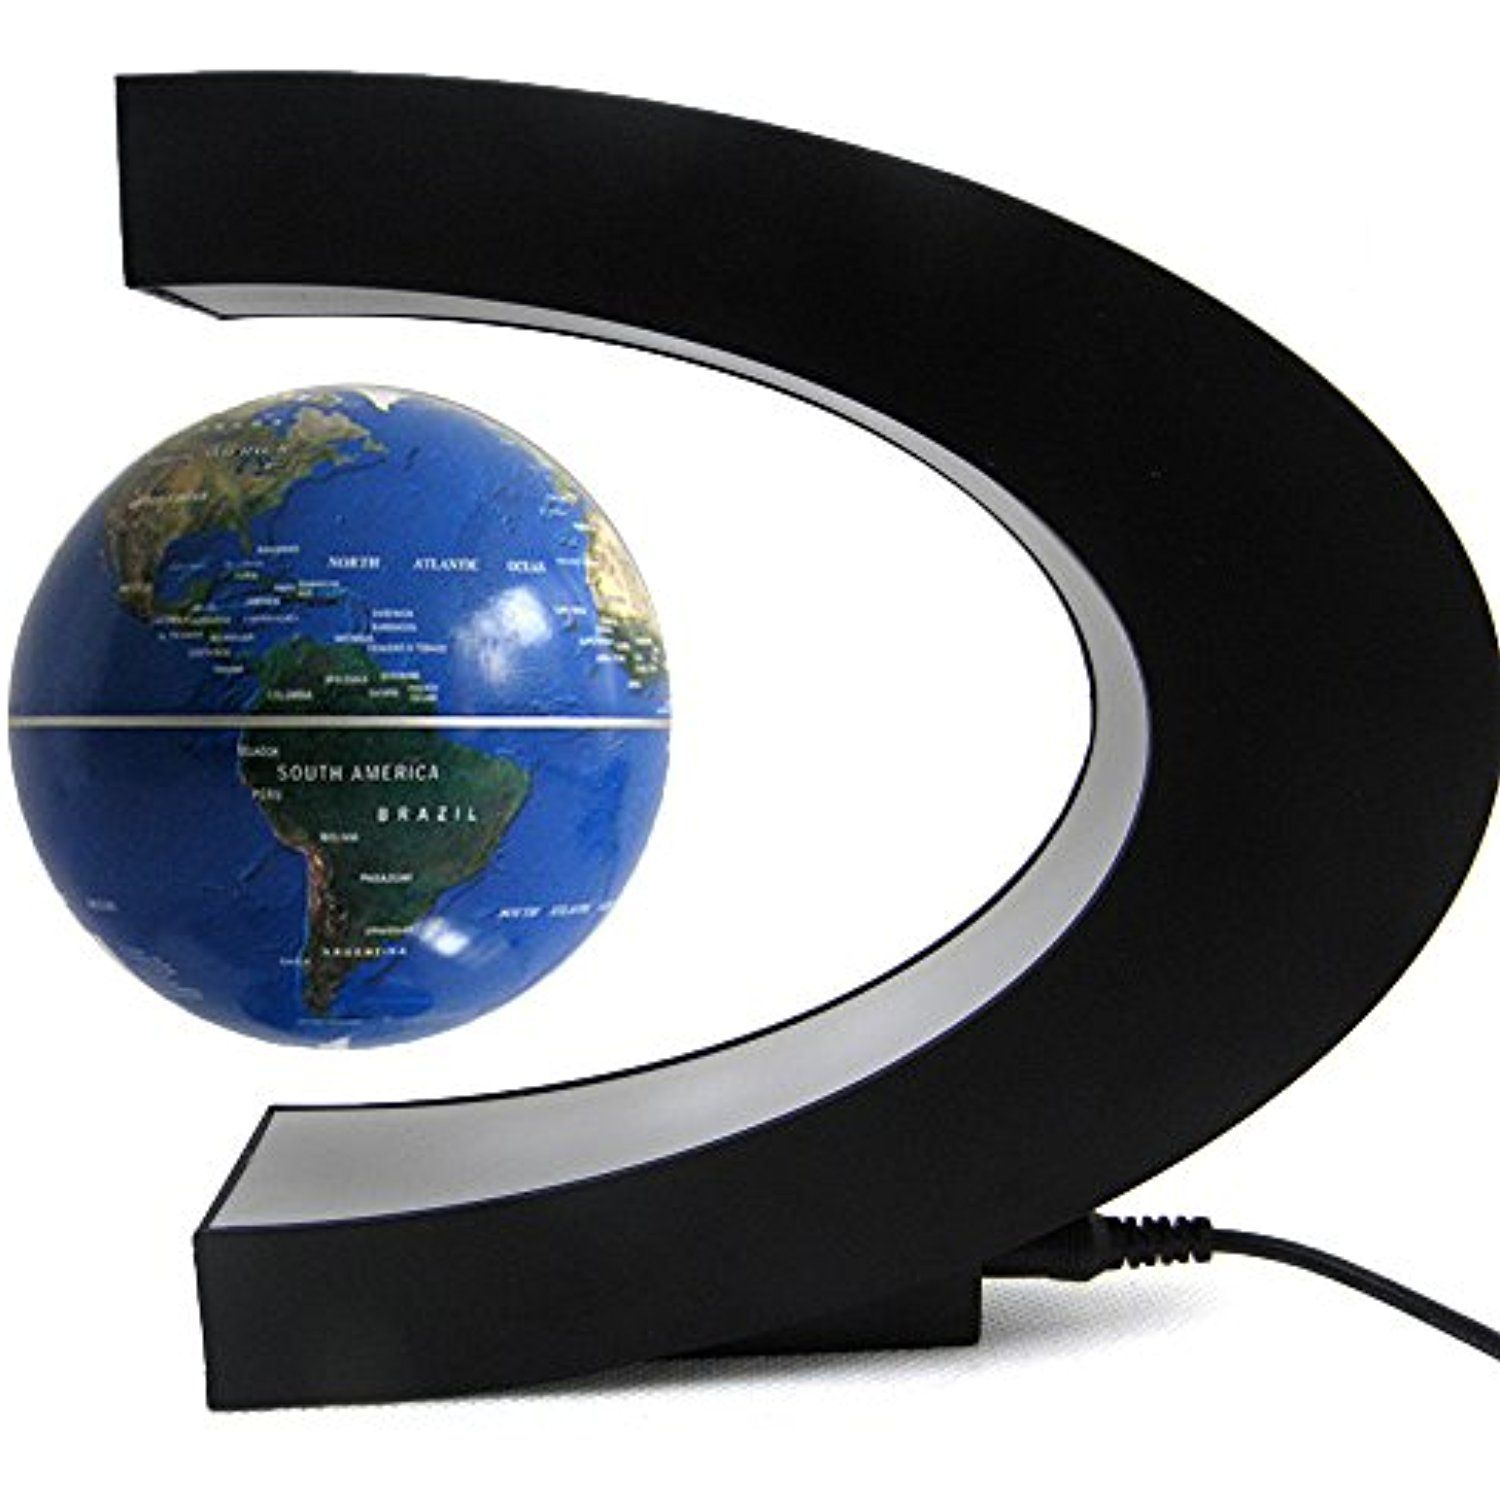 Aenmil learning and playing c shape led world map decoration aenmil learning and playing c shape led world map decoration magnetic levitation floating globe light gumiabroncs Images